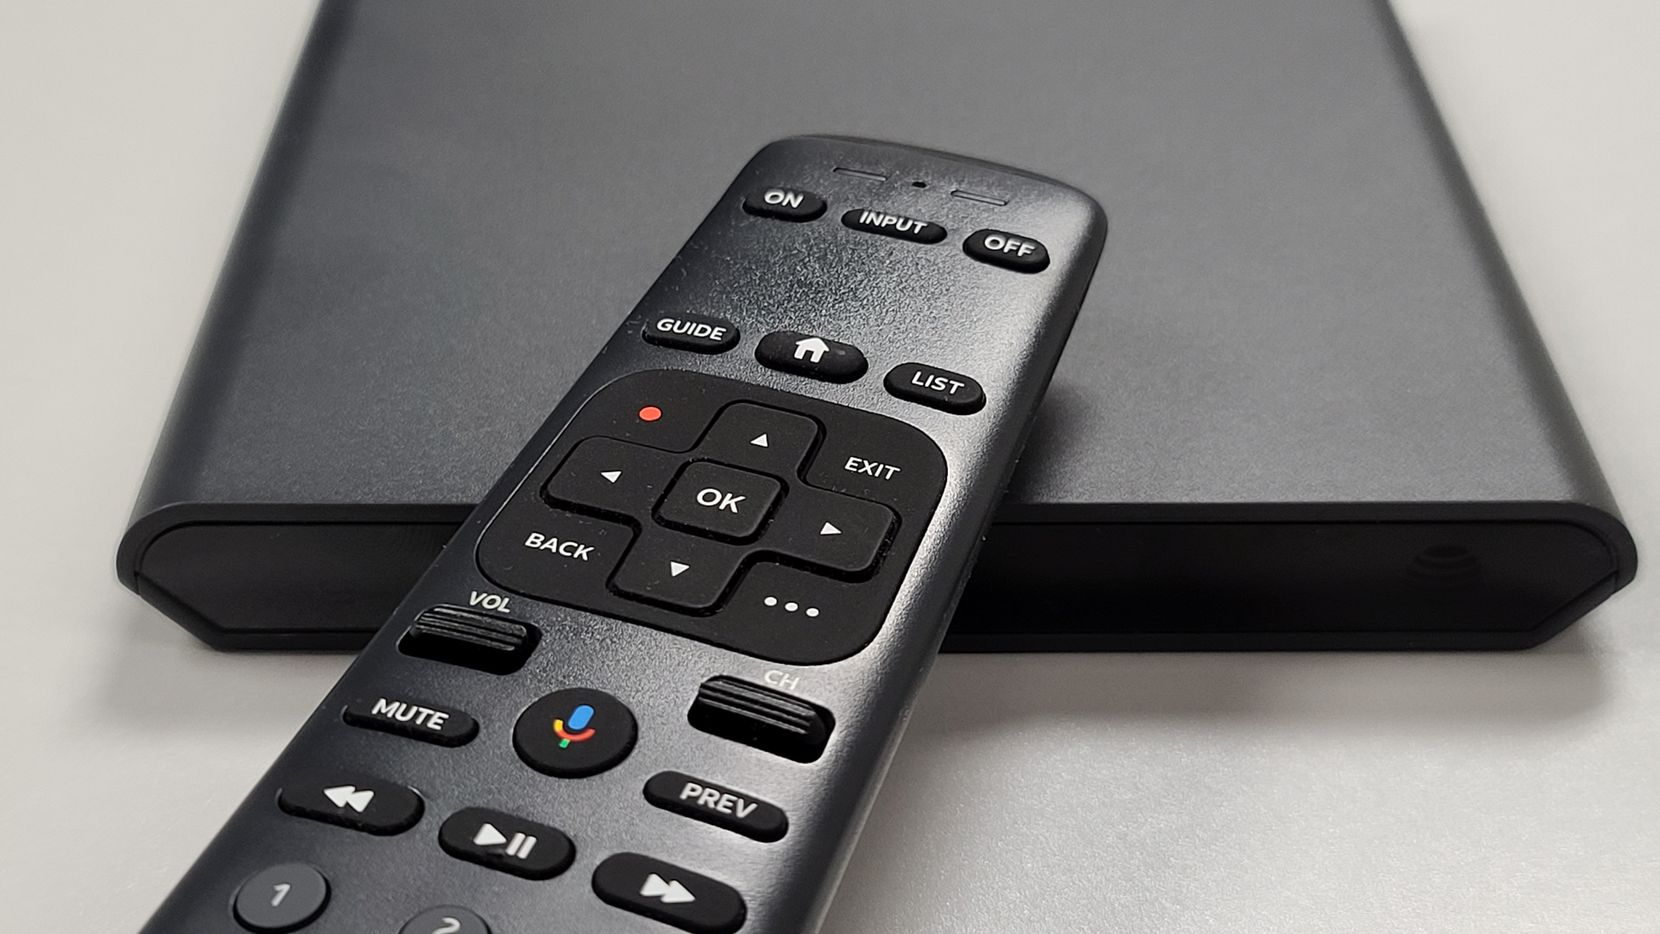 AT&T TV box and remote pictured. AT&T launched its new AT&T TV product Monday March 2, 2020. It hopes the service will appeal to subscribers fleeing from tradition pay-TV providers like its own DirecTV business.